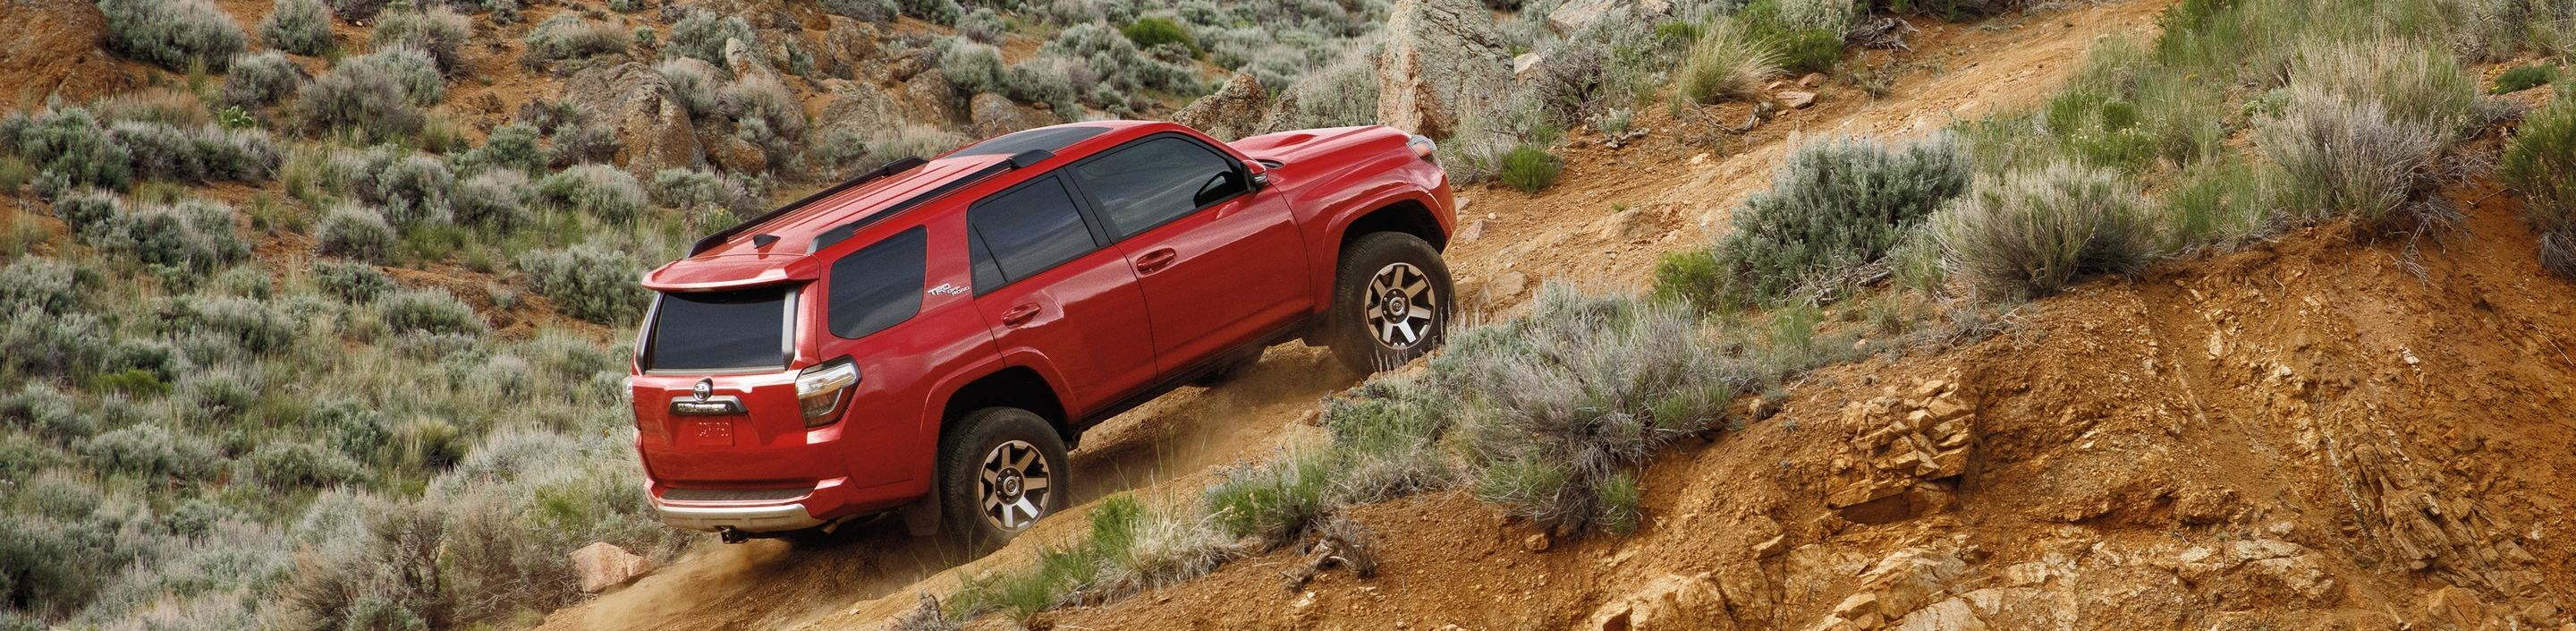 2020 Toyota 4Runner for Sale near Cedar Rapids, IA